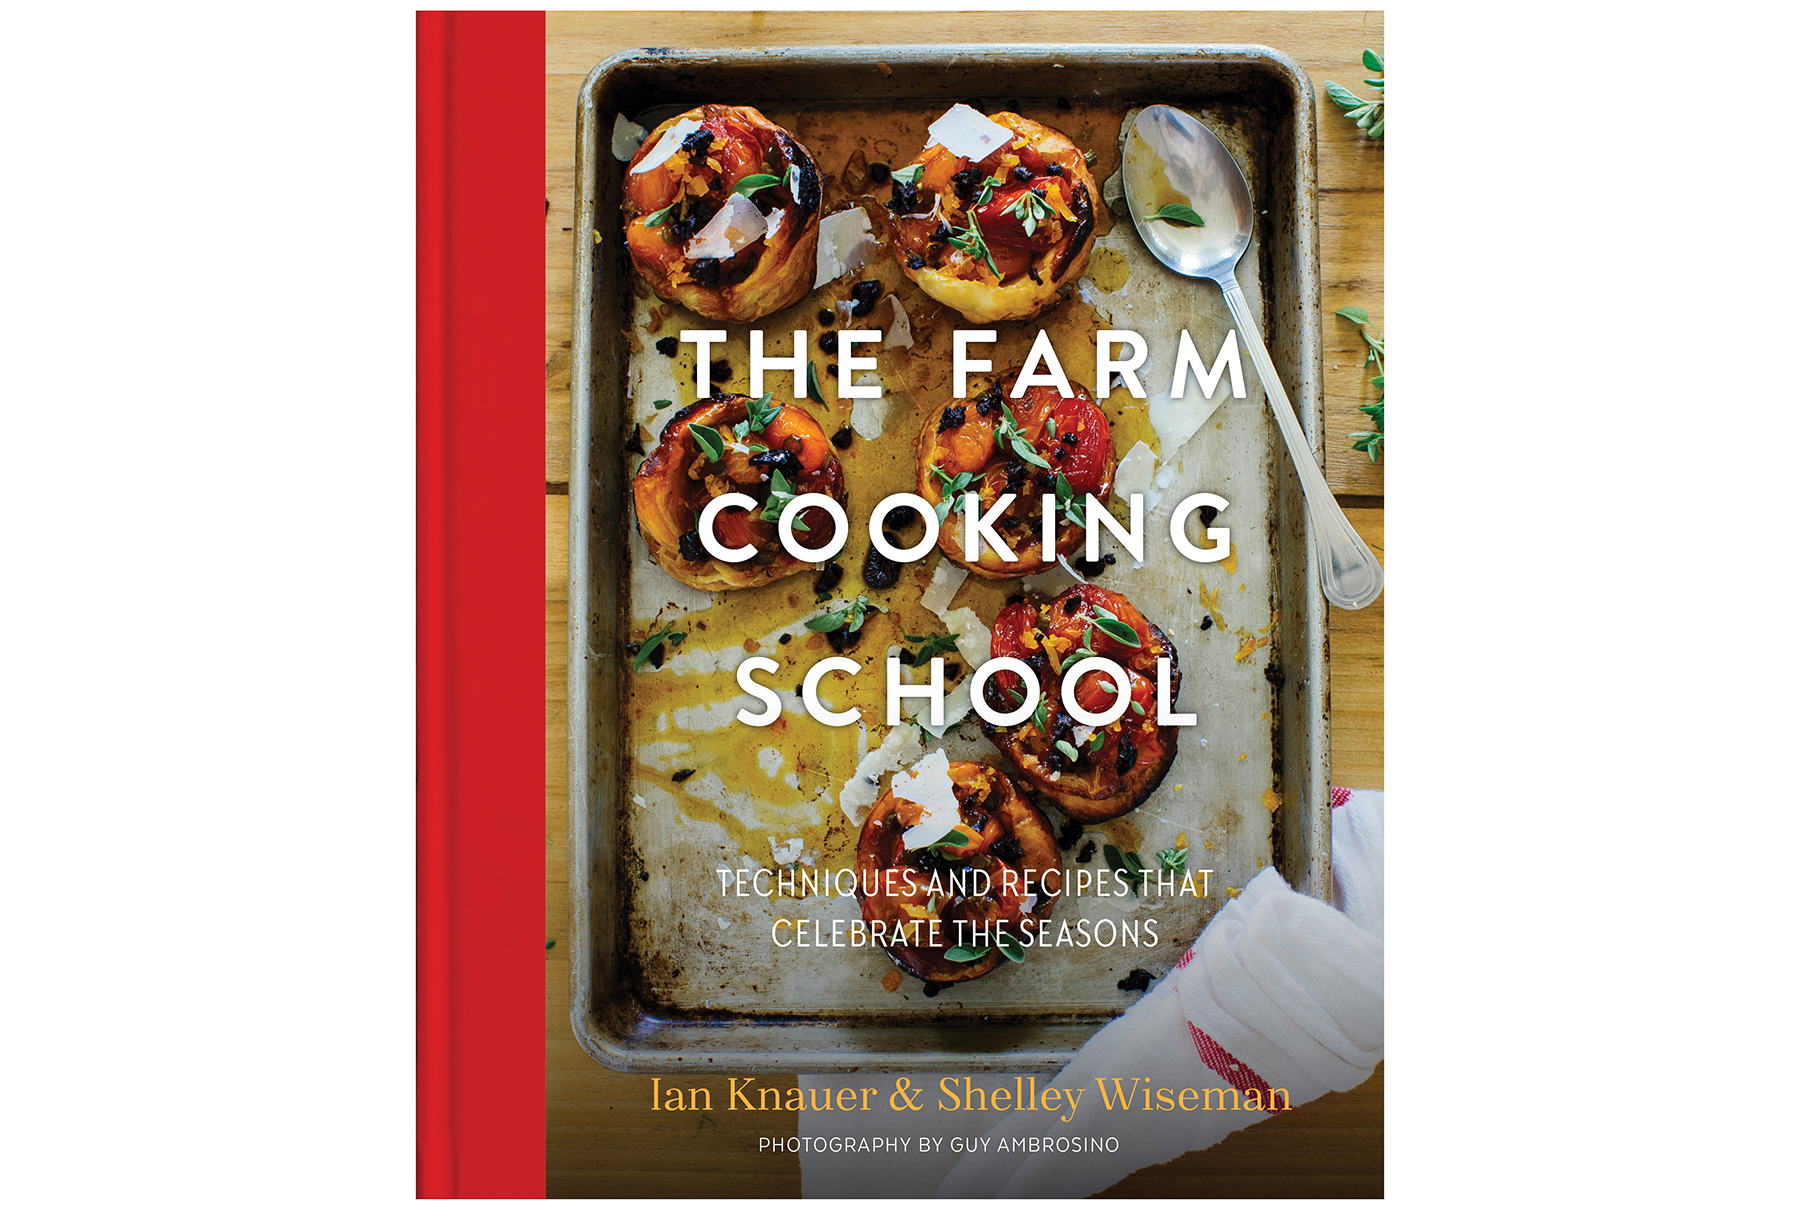 The Farm Cooking School, by Ian Knauer and Shelley Wiseman